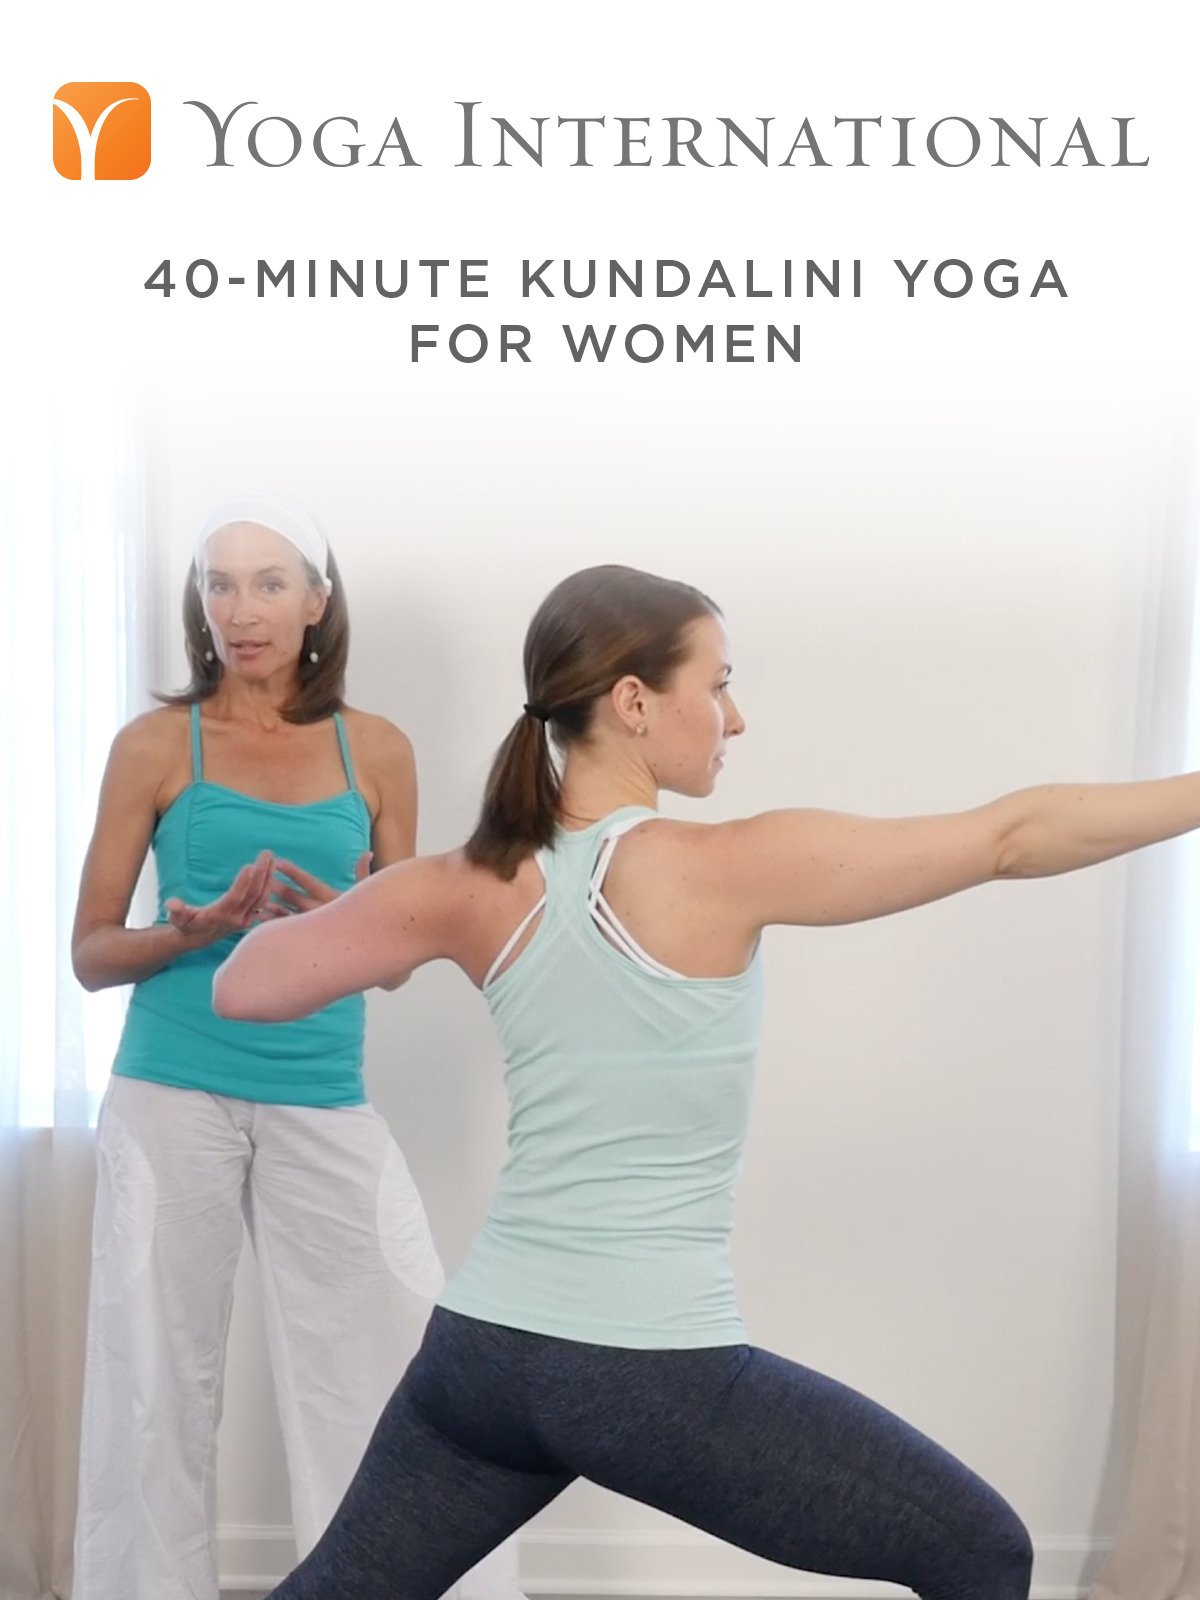 40-Minute Kundalini Yoga for Women